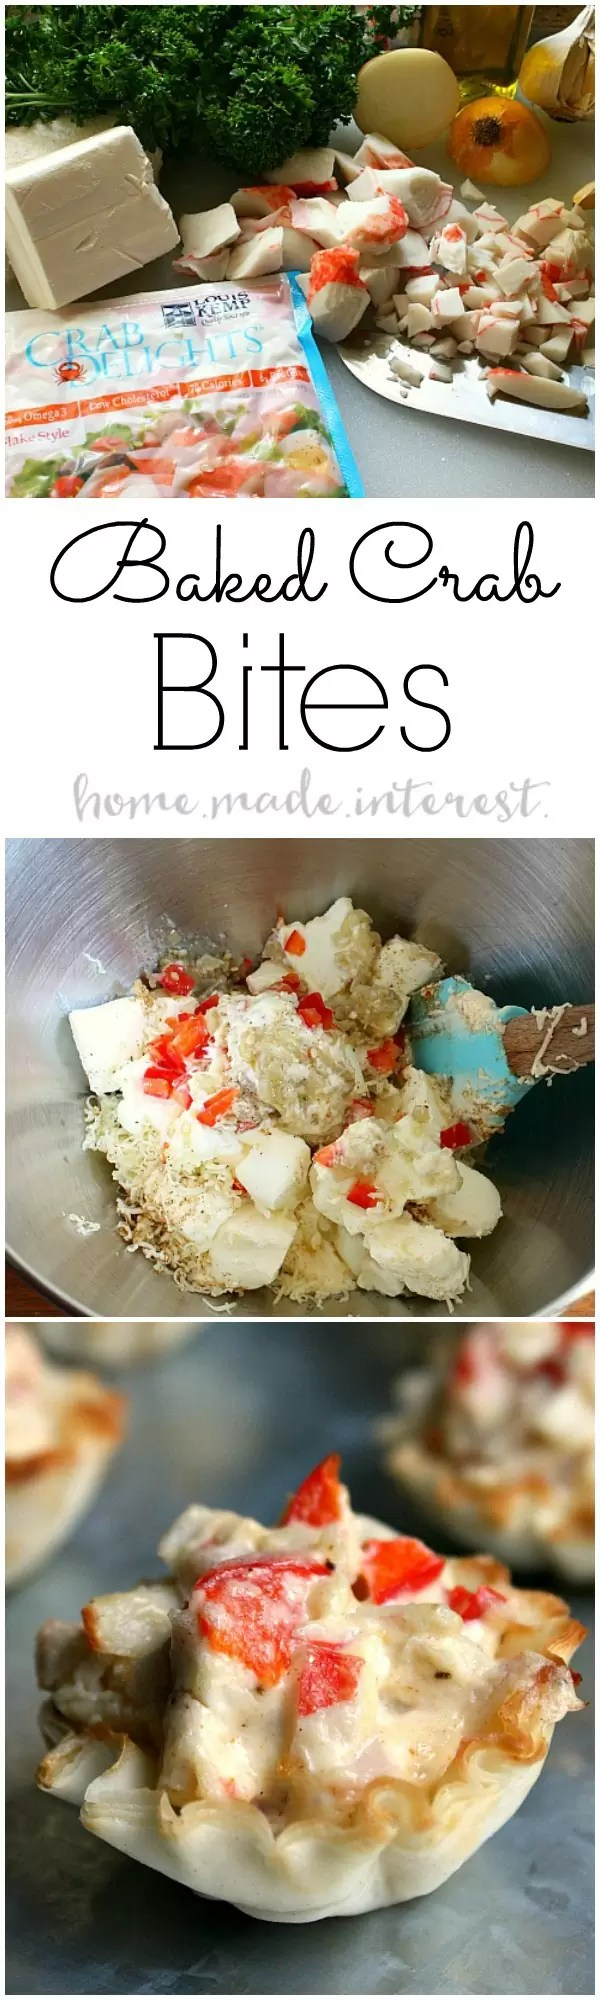 Baked Crab Bites are a simple seafood appetizer served in a crisp phyllo cup. They make a great New Year's Eve appetizer!